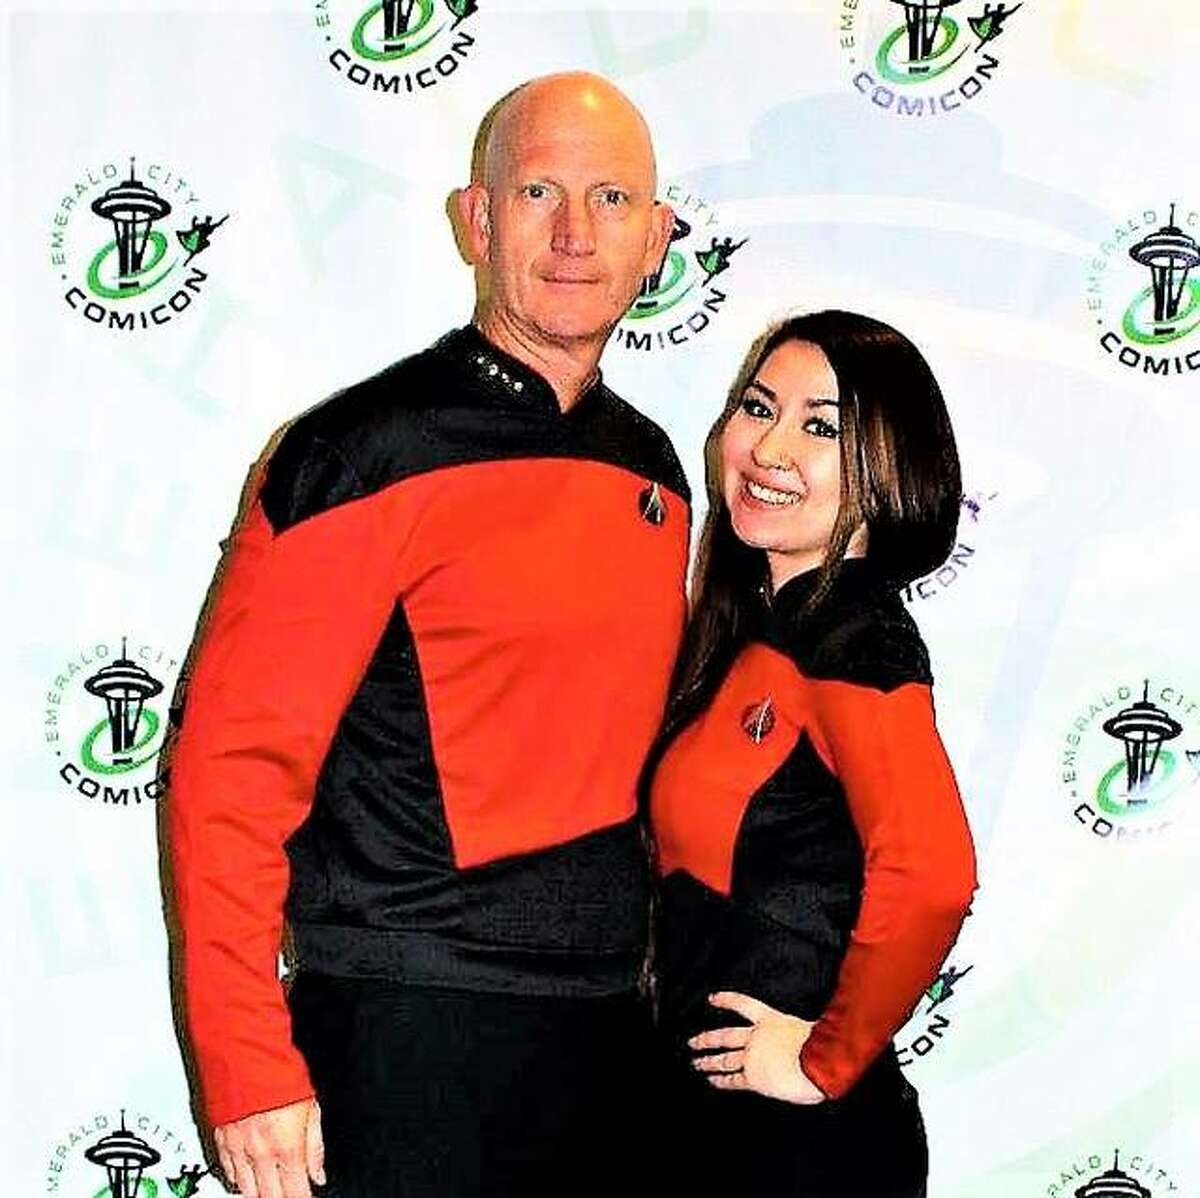 Phil VanEtten with his daughter, Christal, at Emerald City ComiCon. Phil VanEtten currently is USO Director in Okinawa, Japan. Christal VanEtten now lives in Bethalto and is creating a podcast for